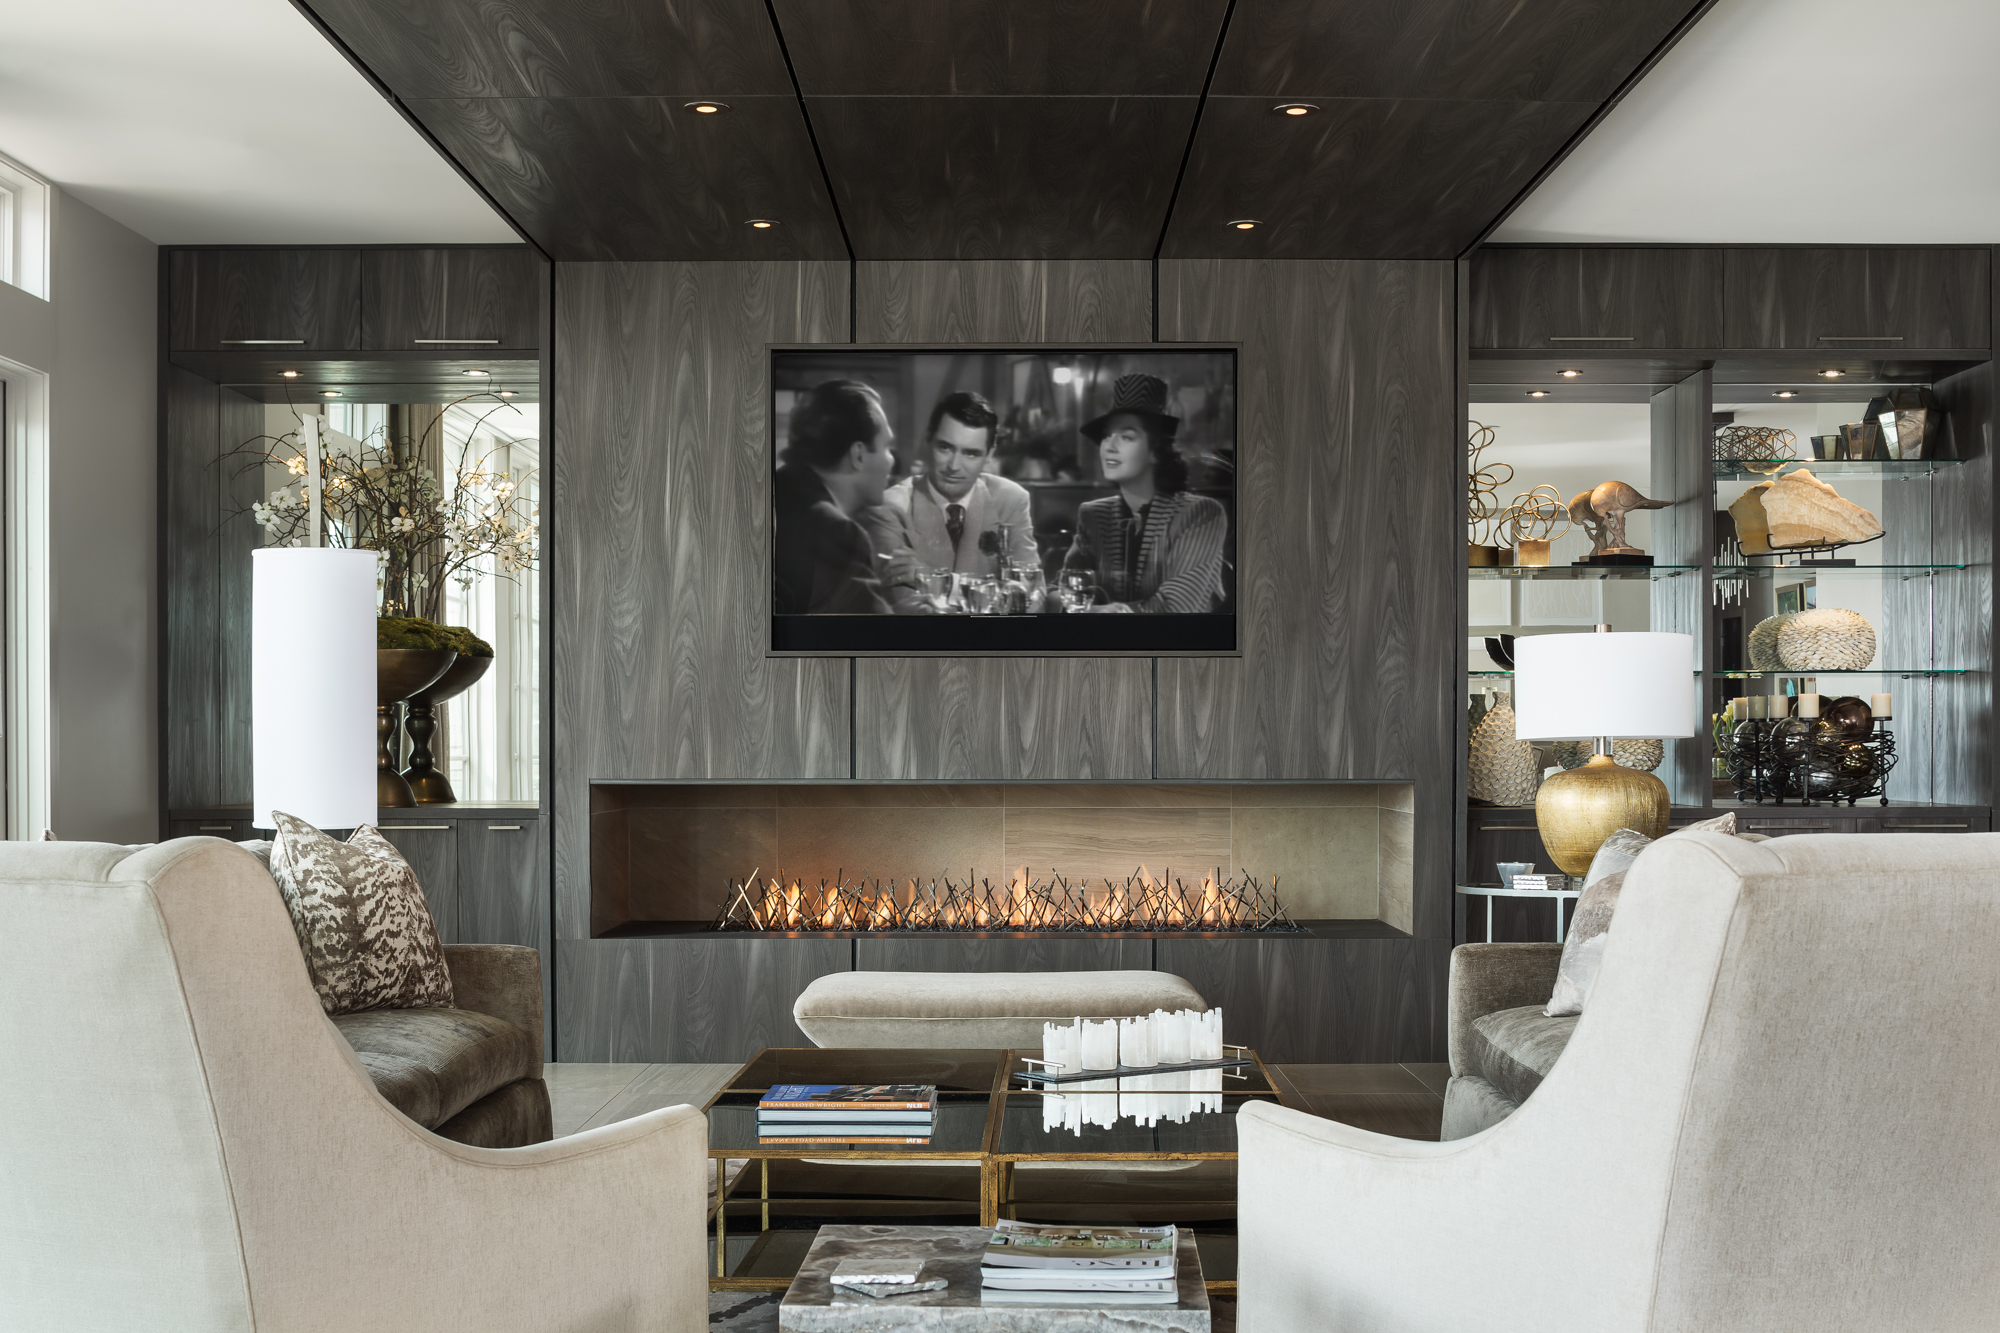 Custom HDTV and Soundbar